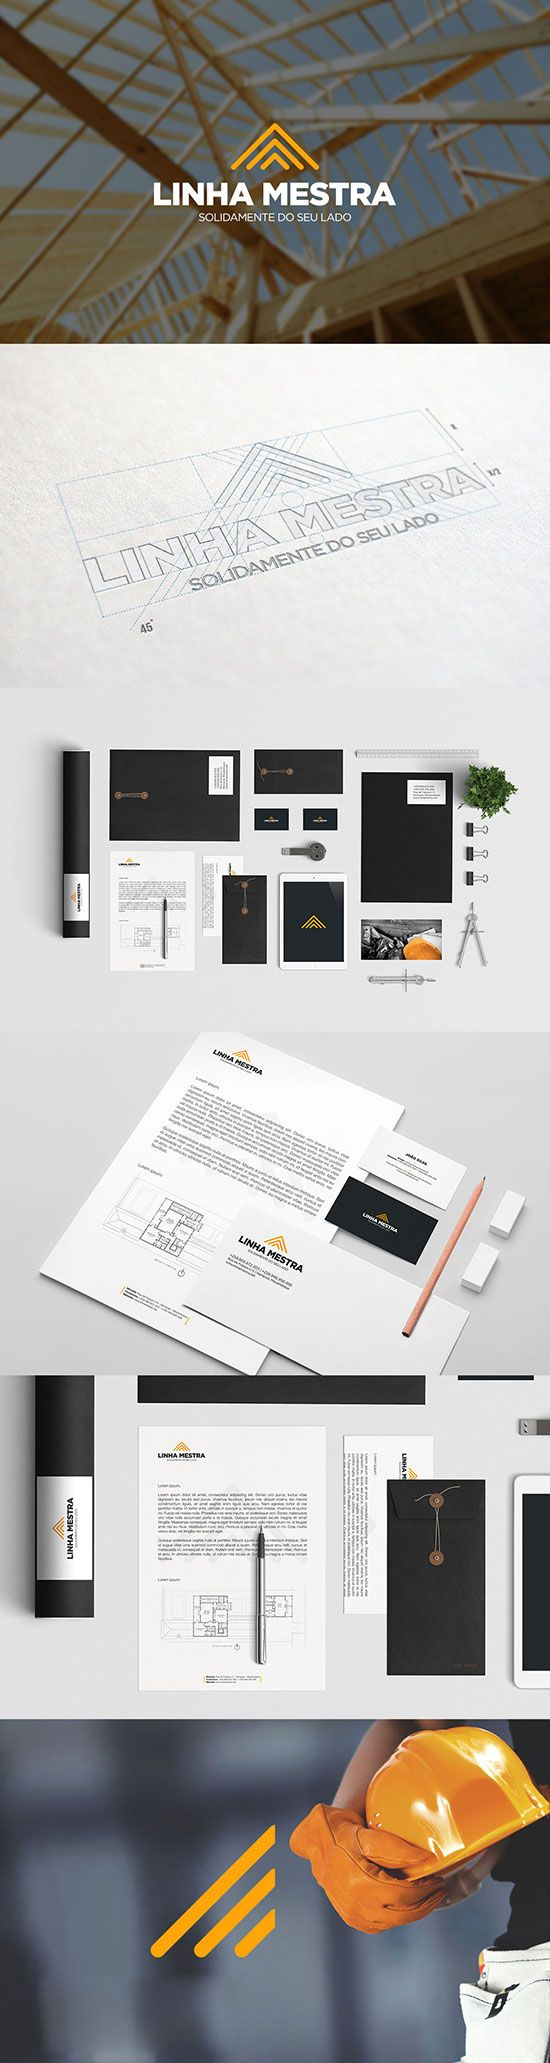 Construction Company Identiity Designs: 17 Inspirational Projects | iBrandStudio